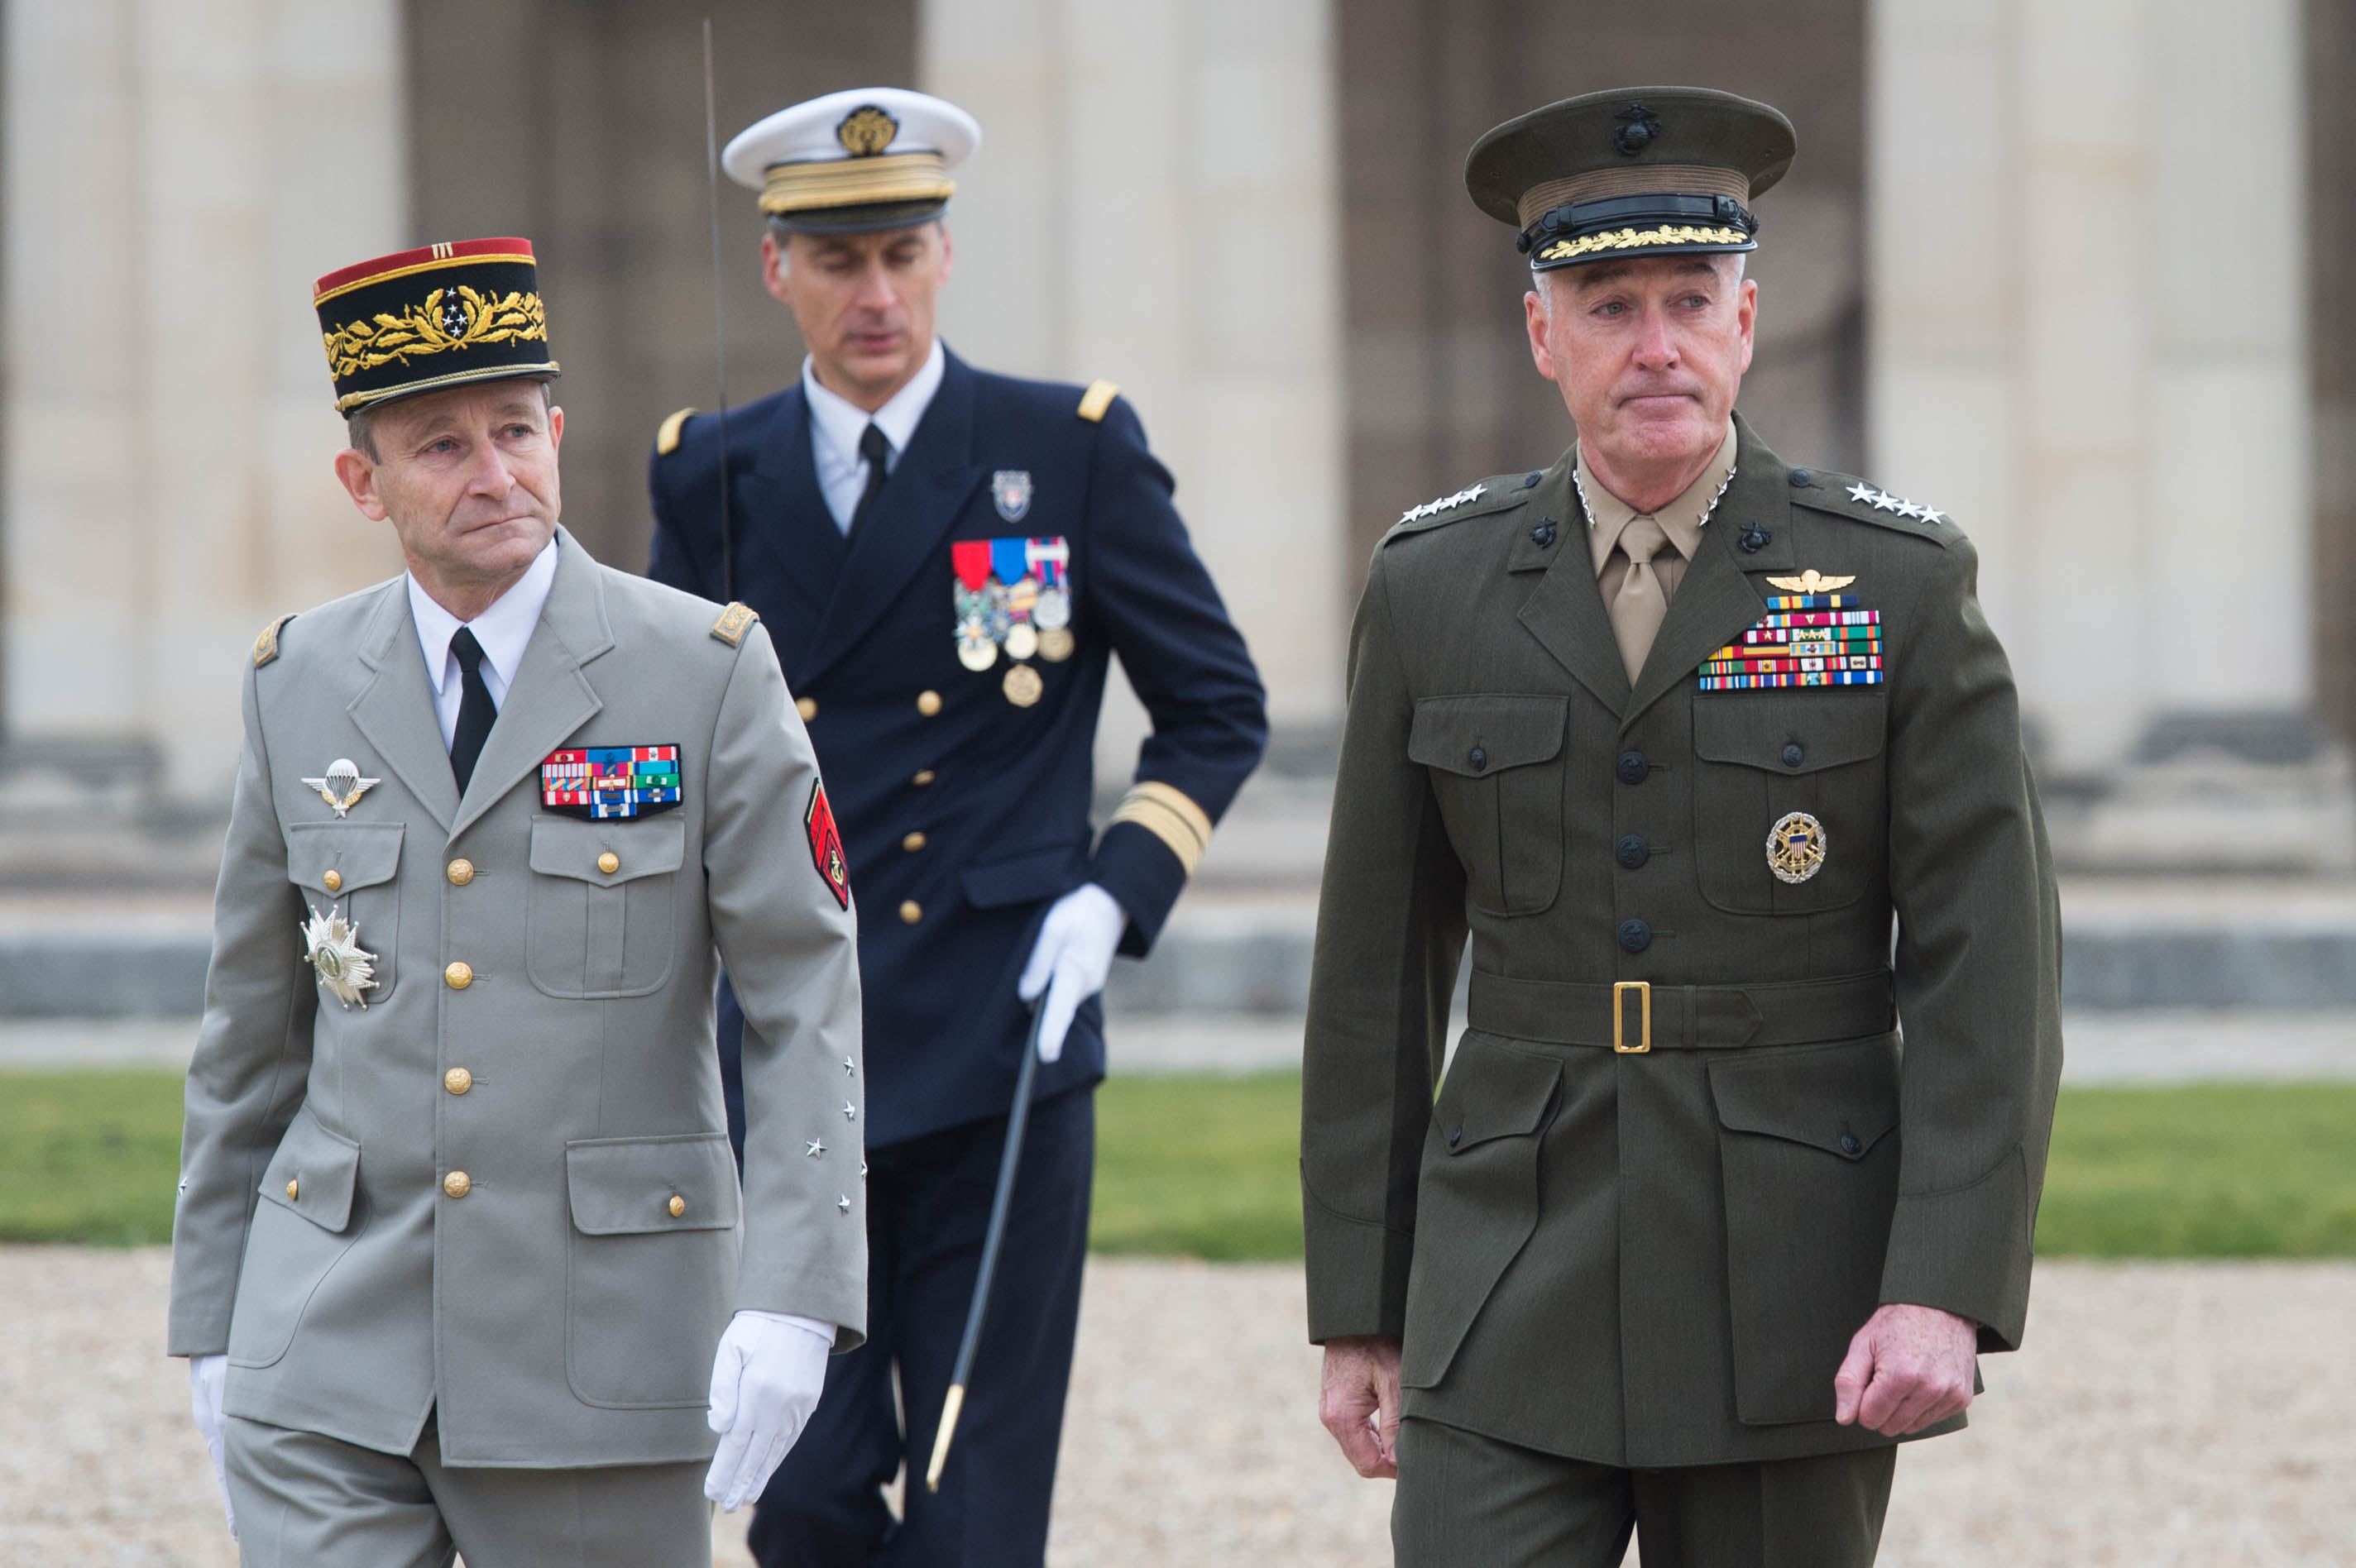 U.S. Marine Corps Gen. Joseph F. Dunford Jr., right, chairman of the Joint Chiefs of Staff, and Gen. Pierre de Villiers, chief of France's defense staff, conduct a military honors ceremony at Ecole Militarie, a military school, in Paris, Jan. 22, 2016.